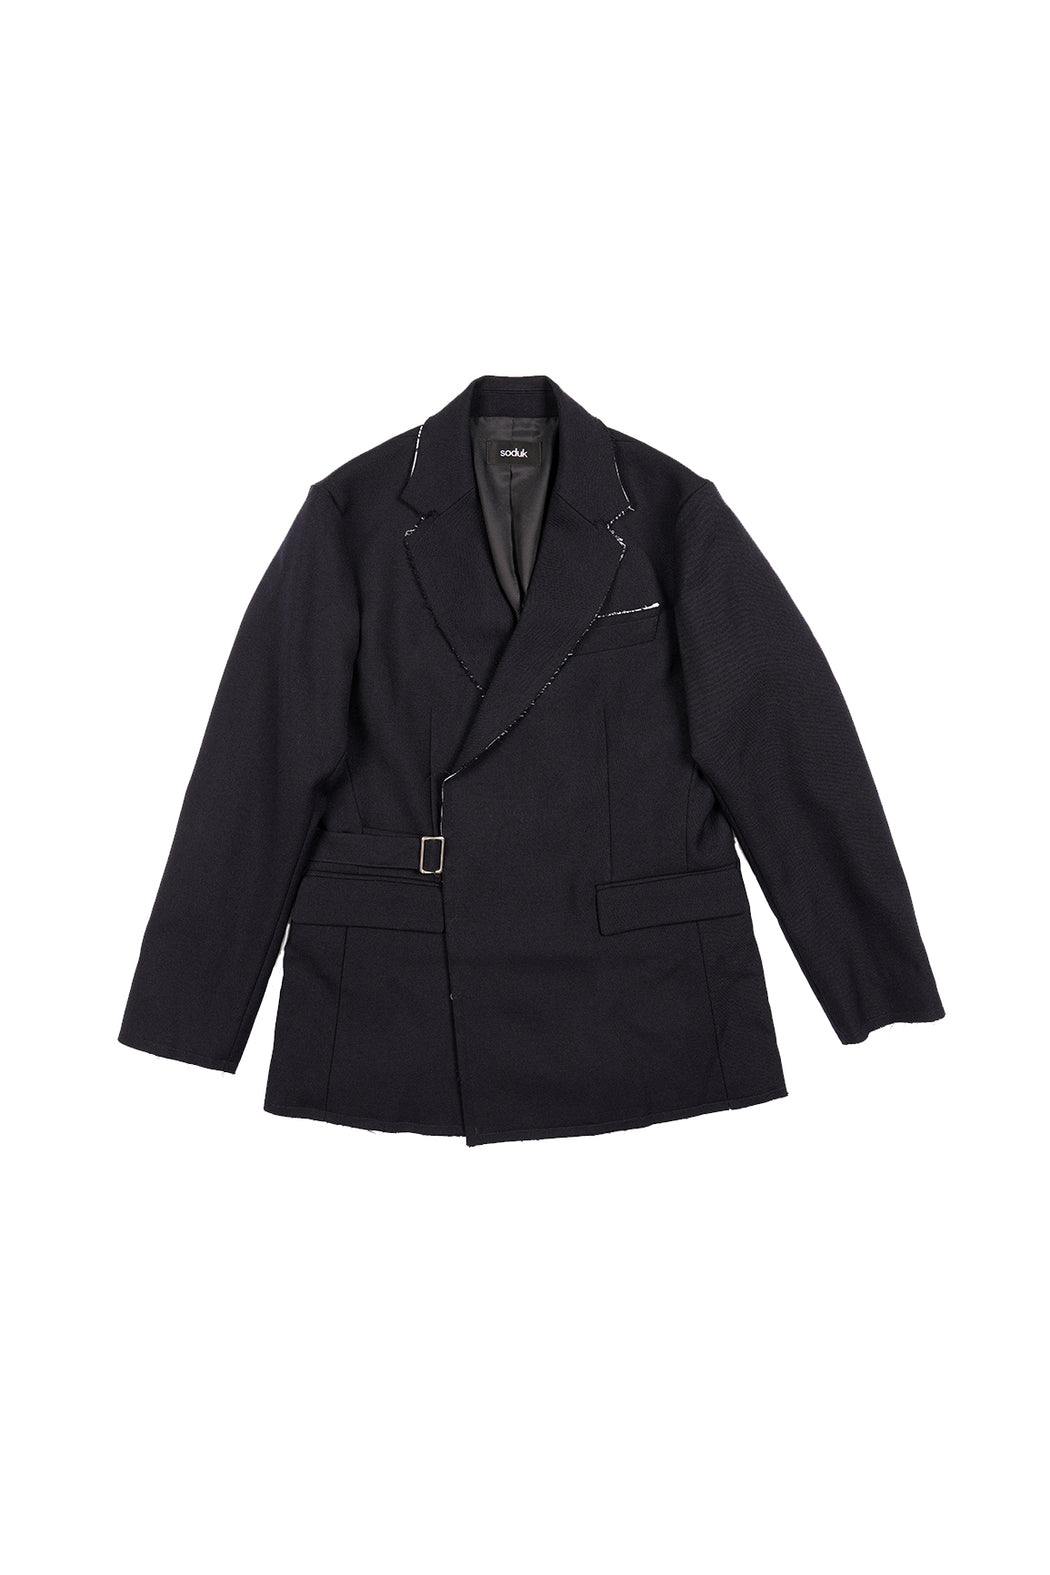 Fringe Finition Jacket - Navy